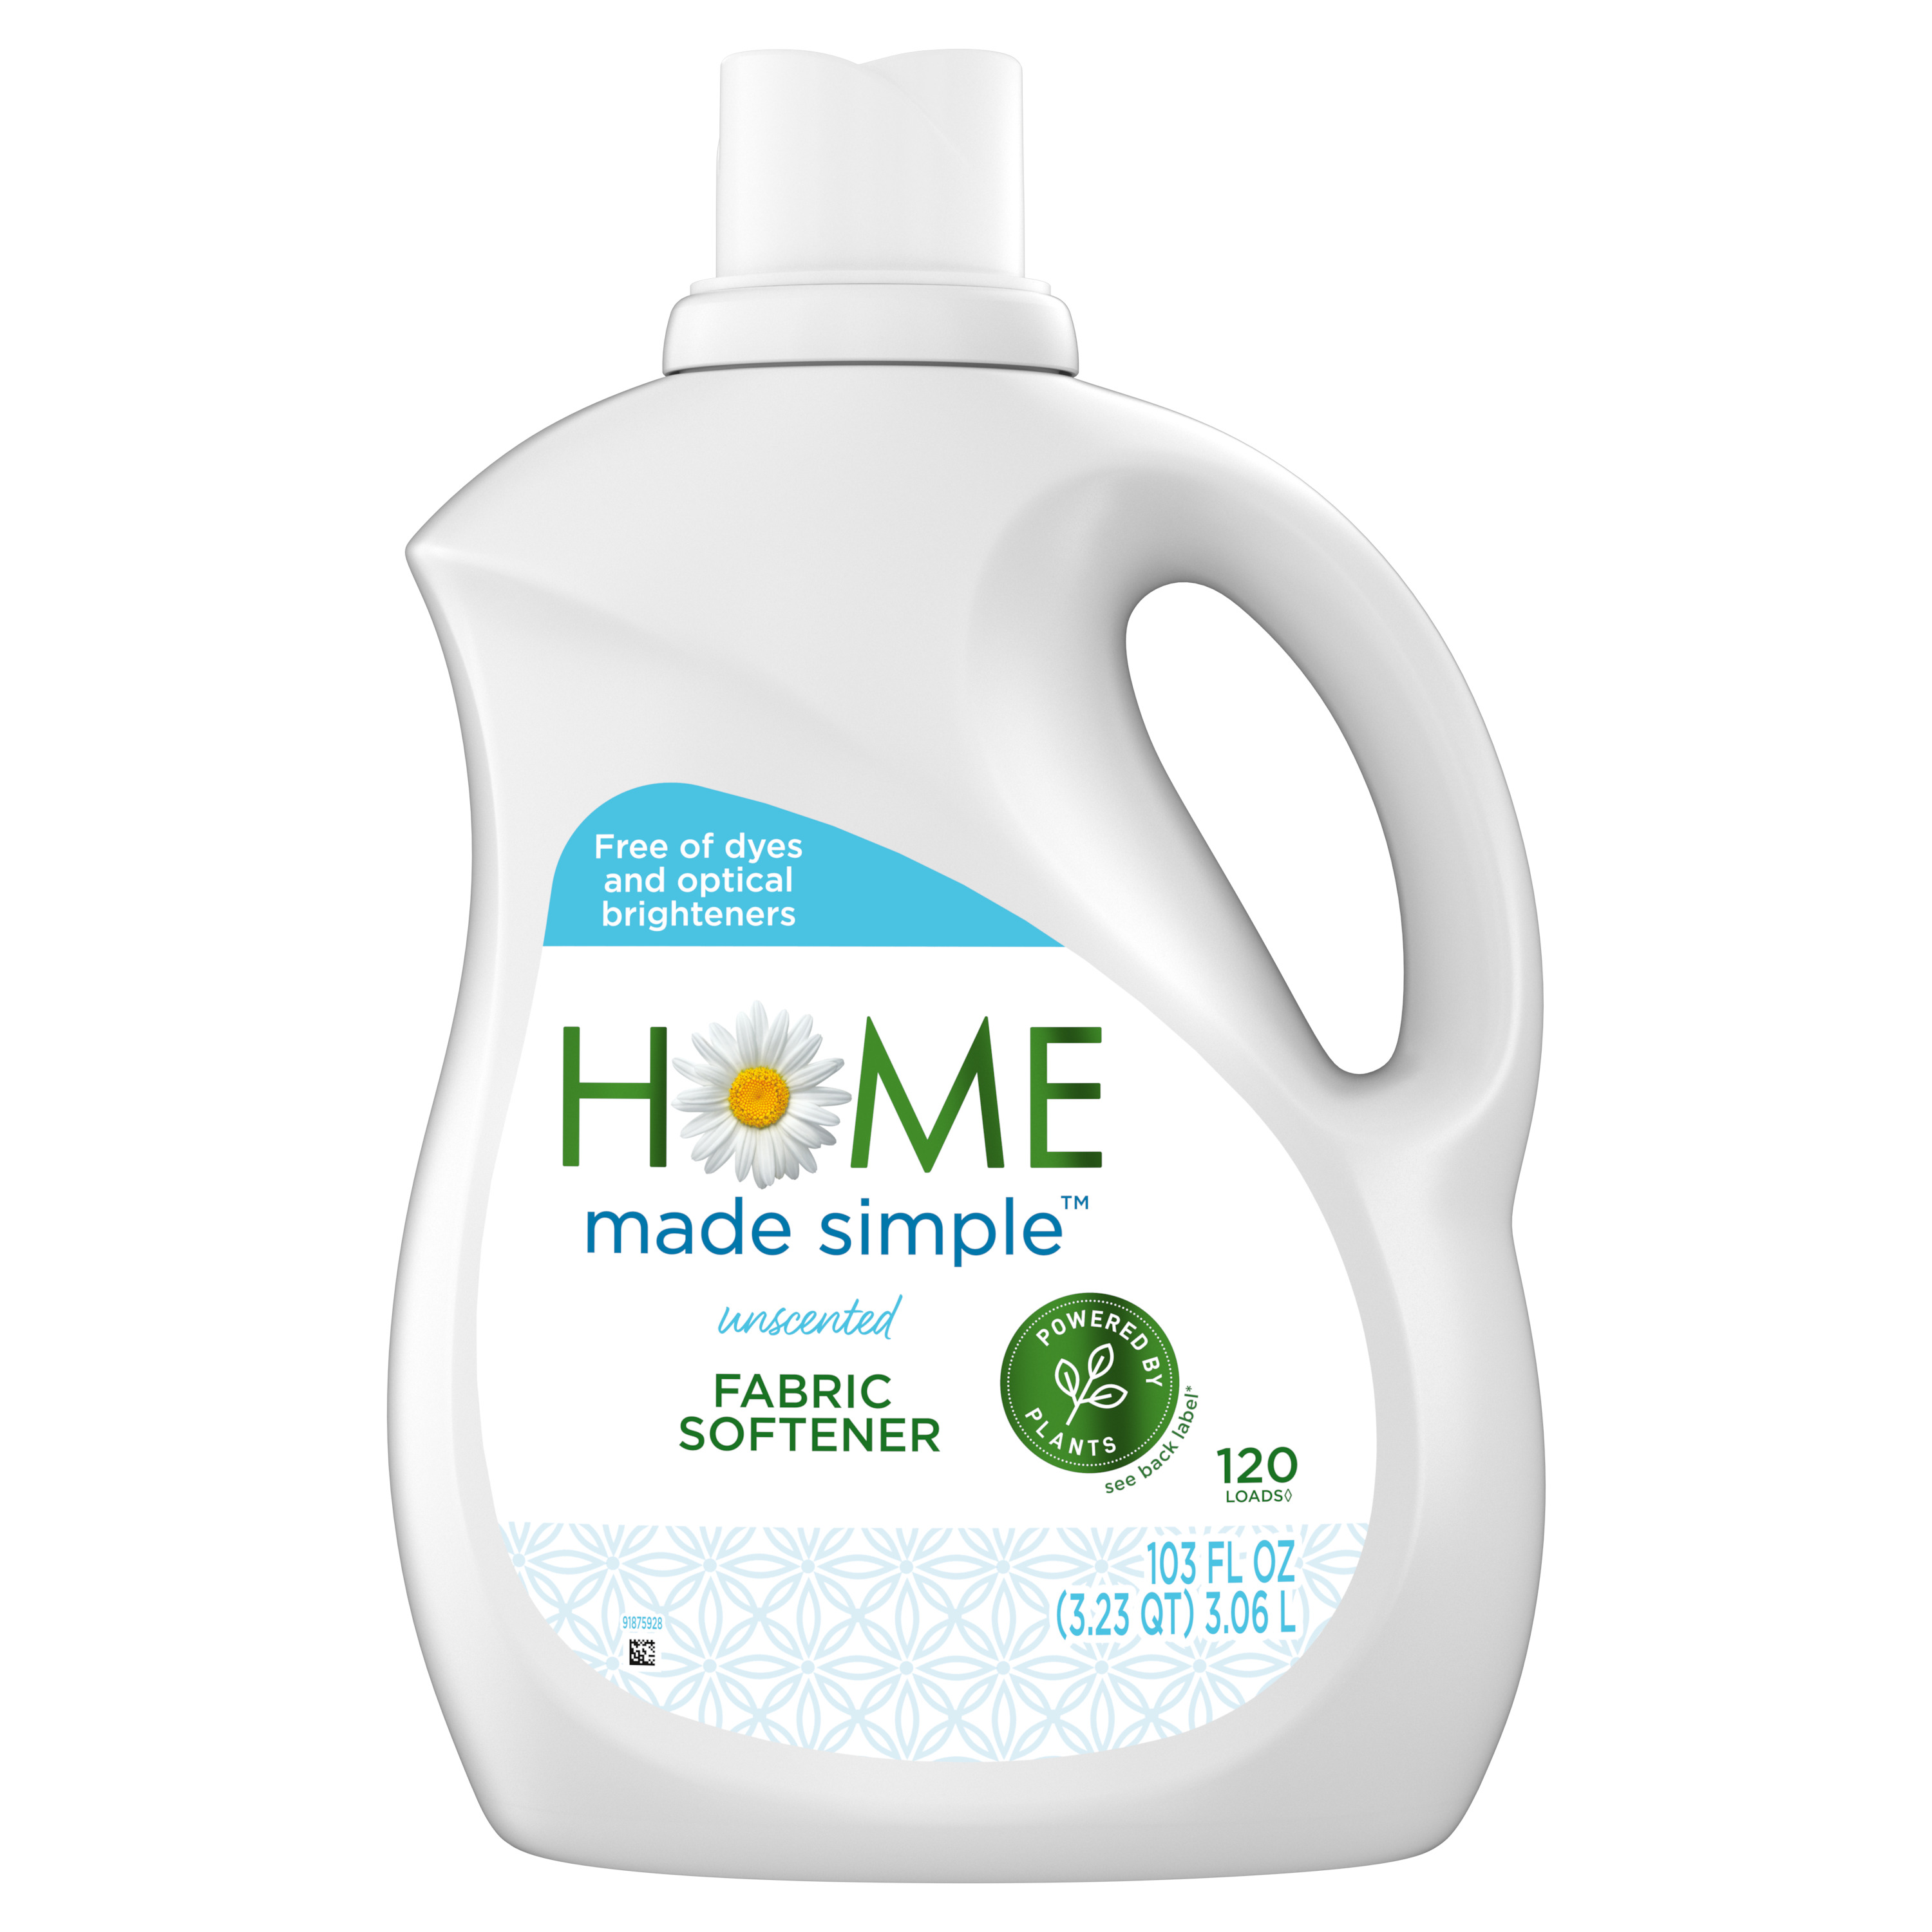 Home Made Simple Fabric Softener, 120 loads, Unscented, 103 fl oz